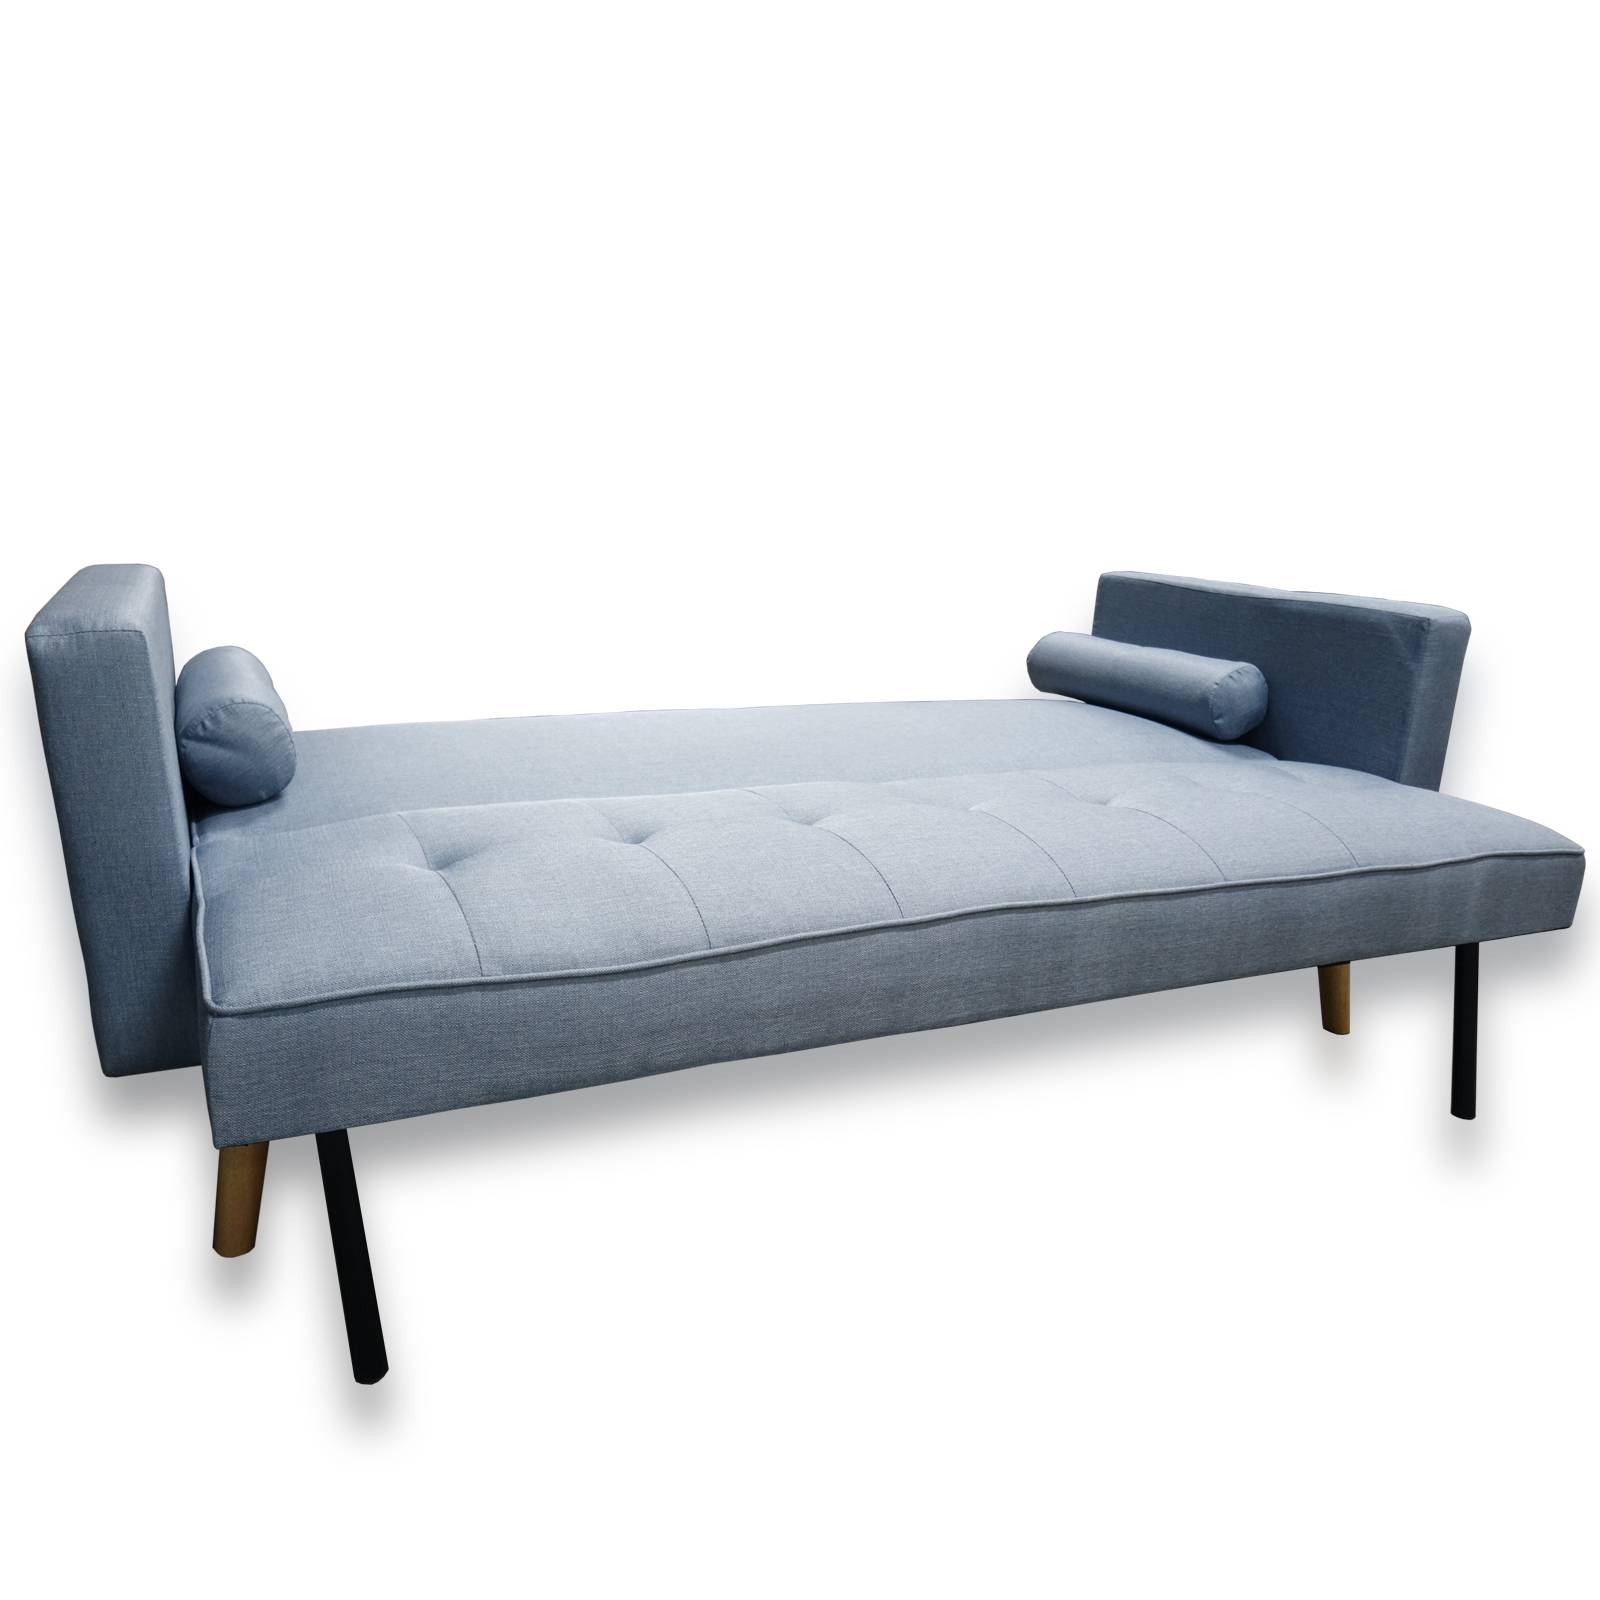 Double Clic Clac Sofa Bed | Centerfieldbar in Clic Clac Sofa Beds (Image 6 of 15)